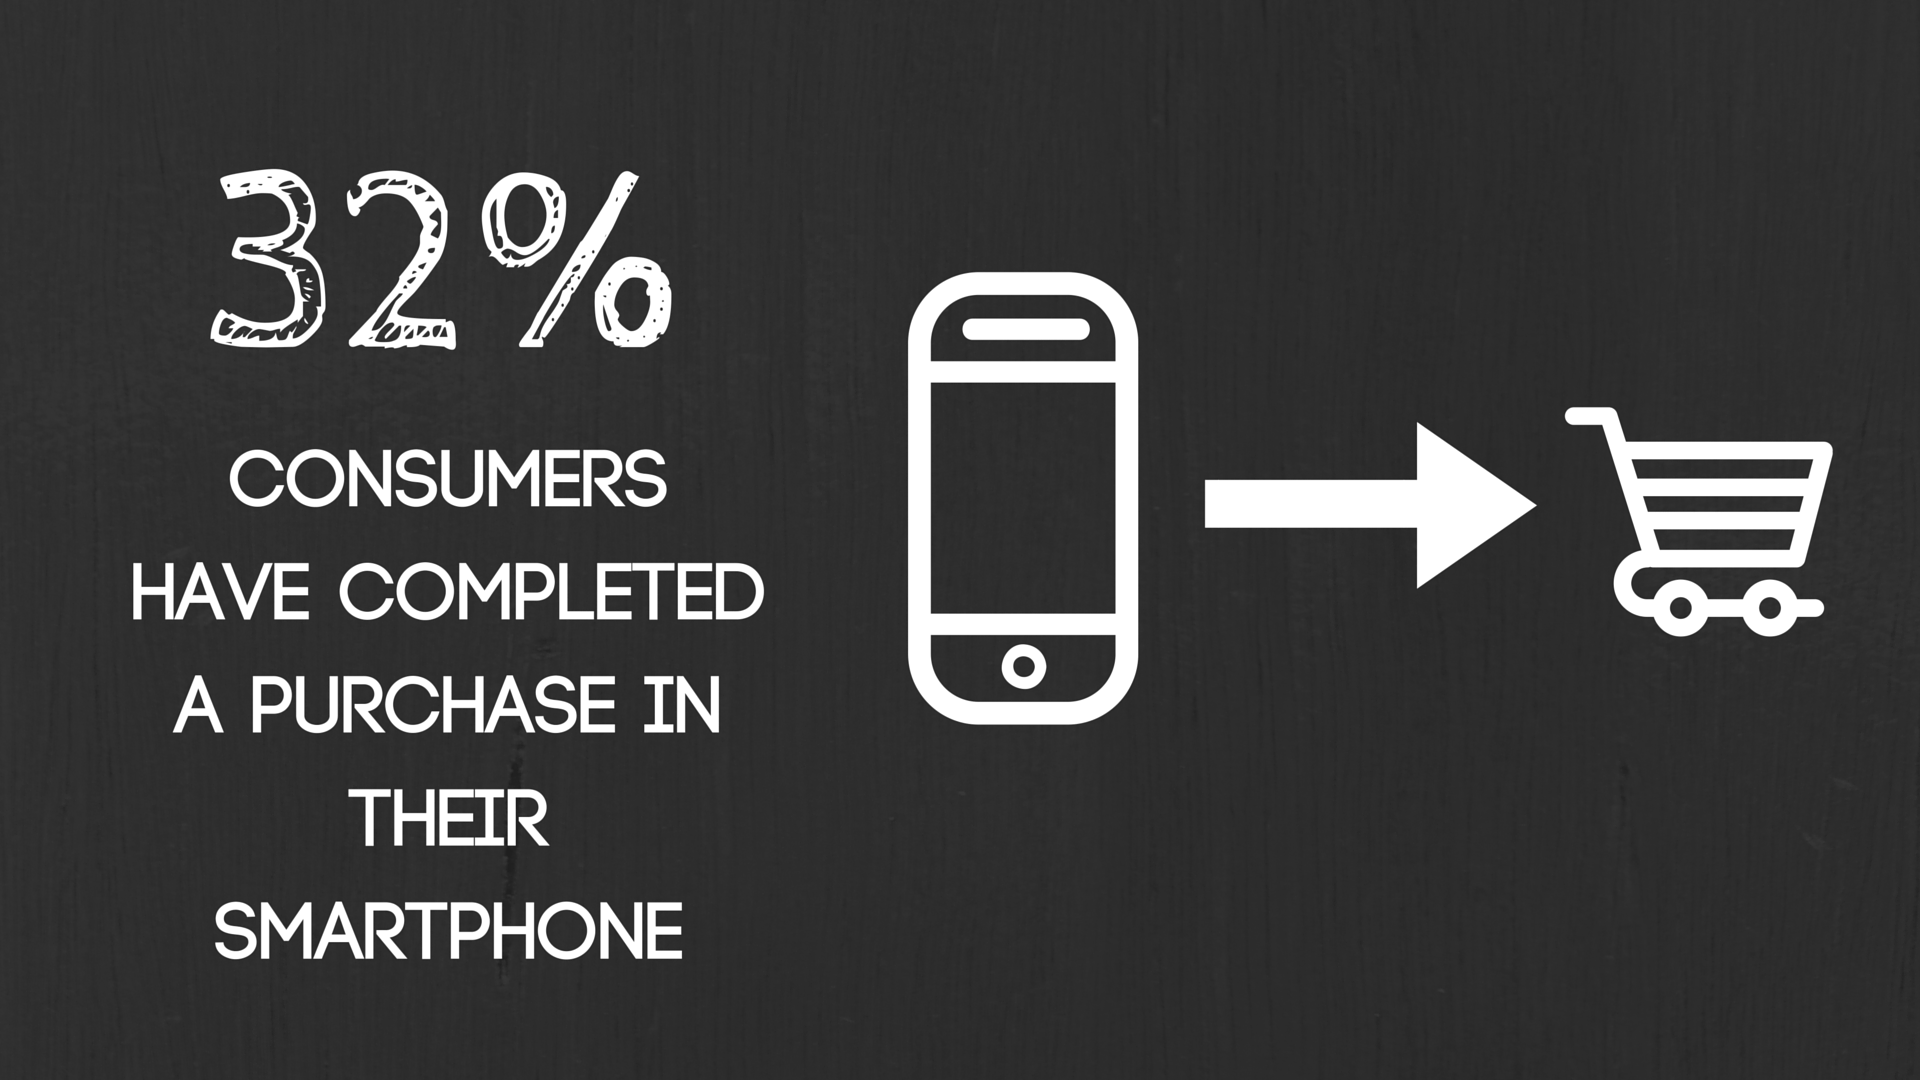 32% of consumers have completed a purchase in their smartphone